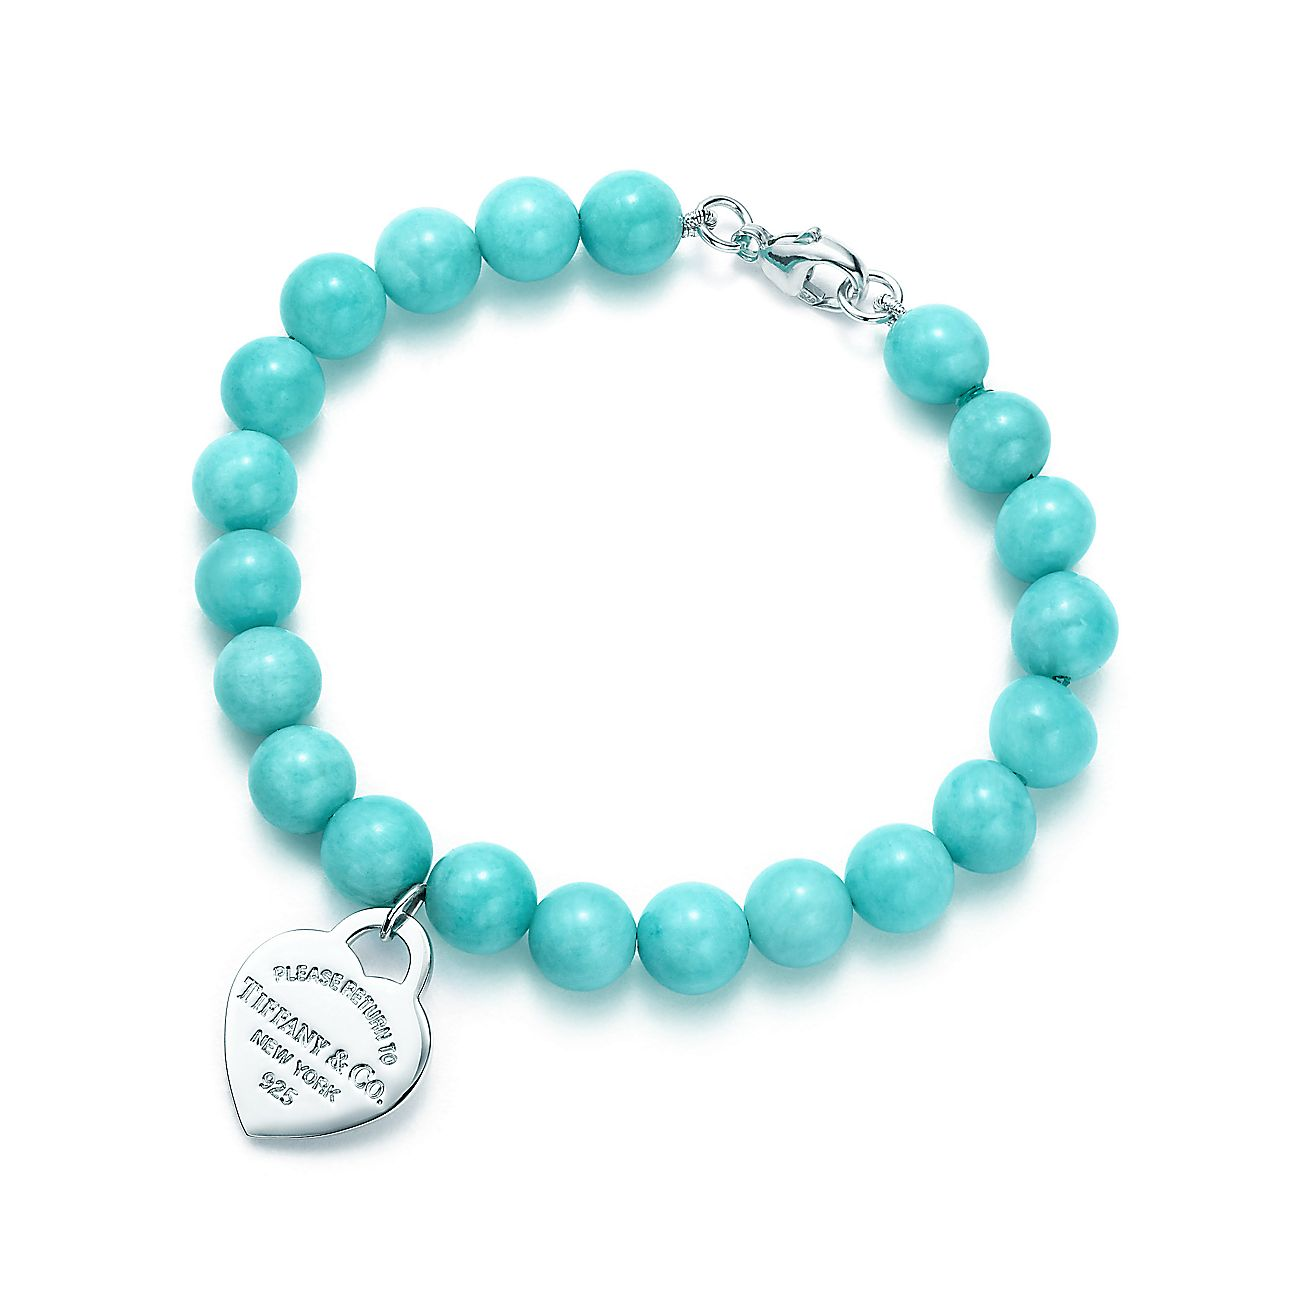 Return To Tiffany Small Heart Tag In Silver On An Ite Bead Bracelet Co